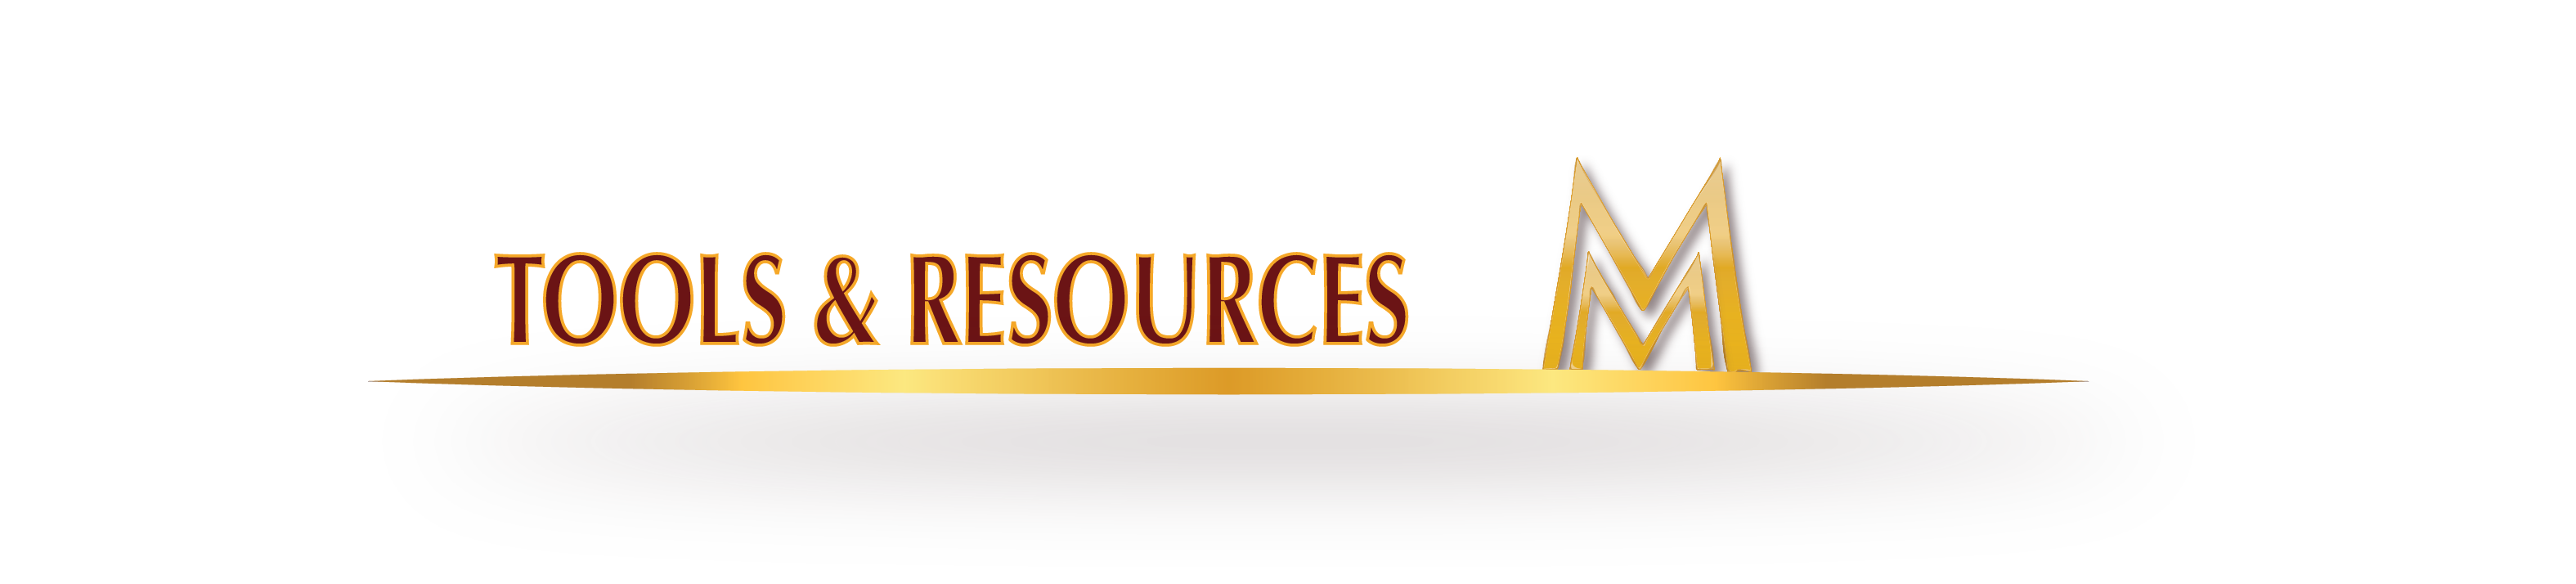 Mason Financial Services Tools and Resources Graphic